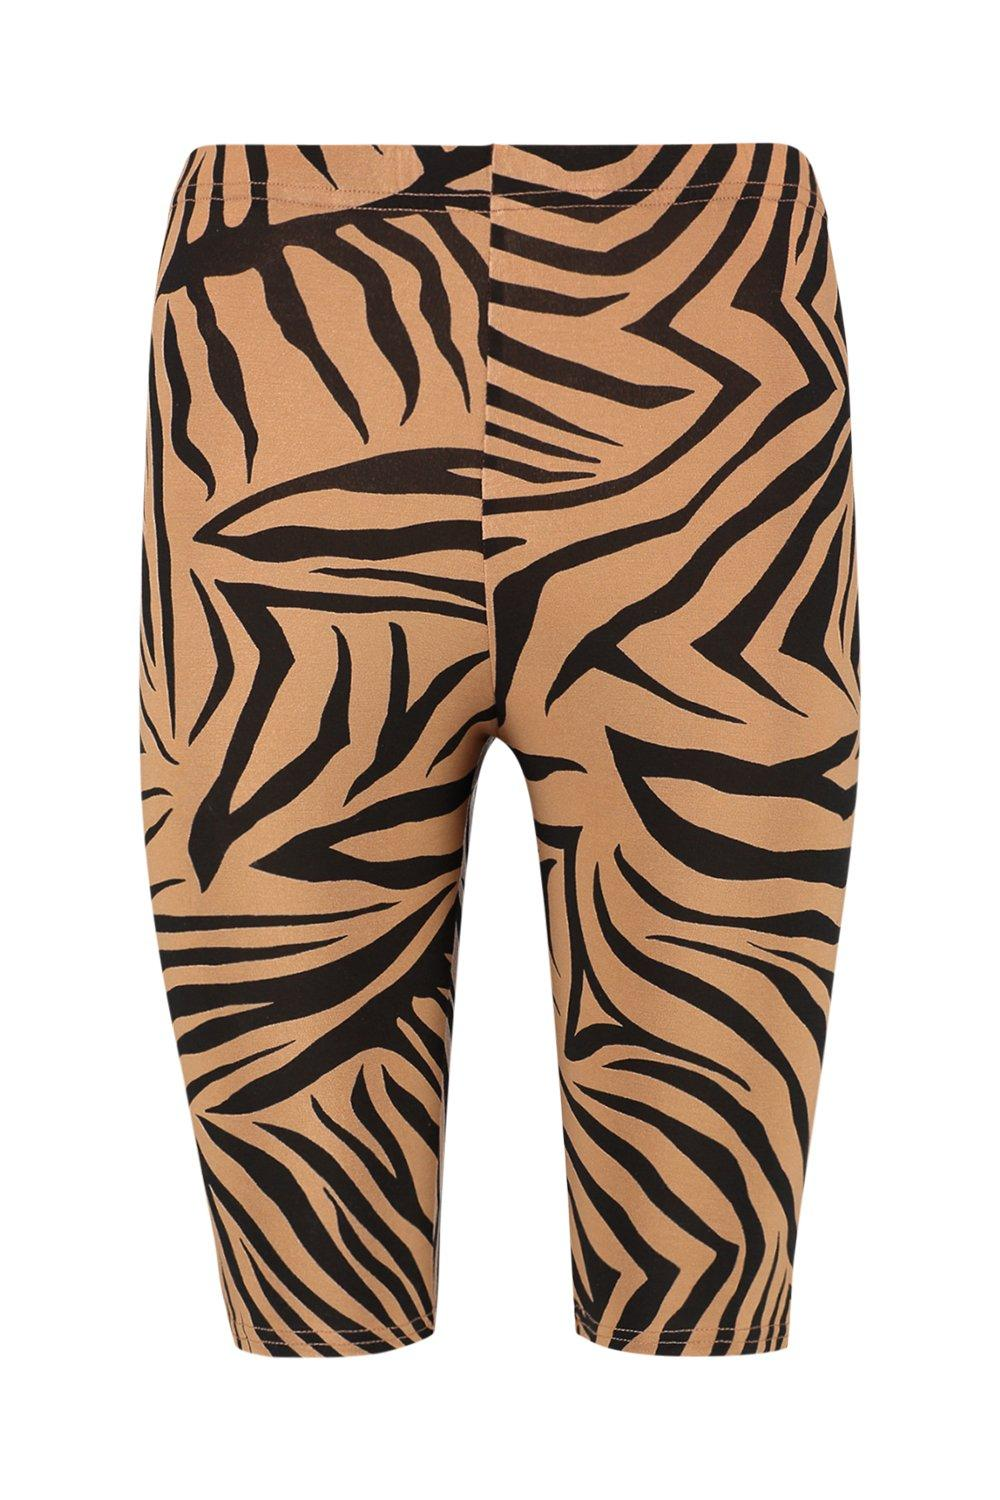 Print Shorts Zebra Cycling Shorts Zebra Cycling black black Print EH174qz